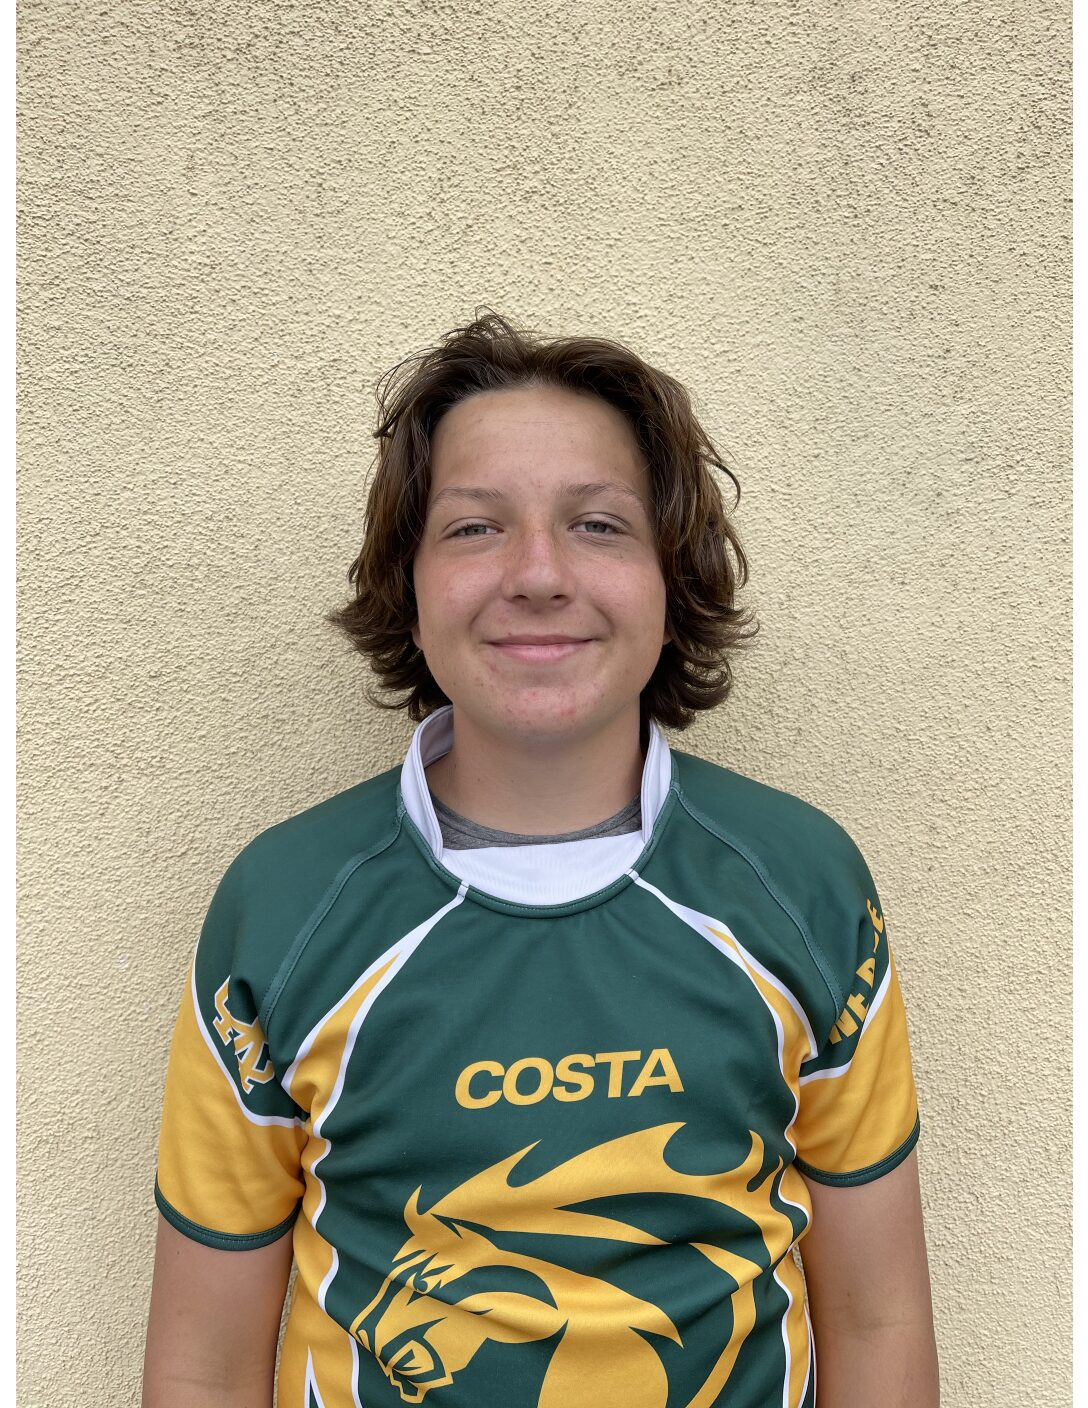 http://www.costarugby.com/wp-content/uploads/2021/05/9JustinSmith-pdf.jpg